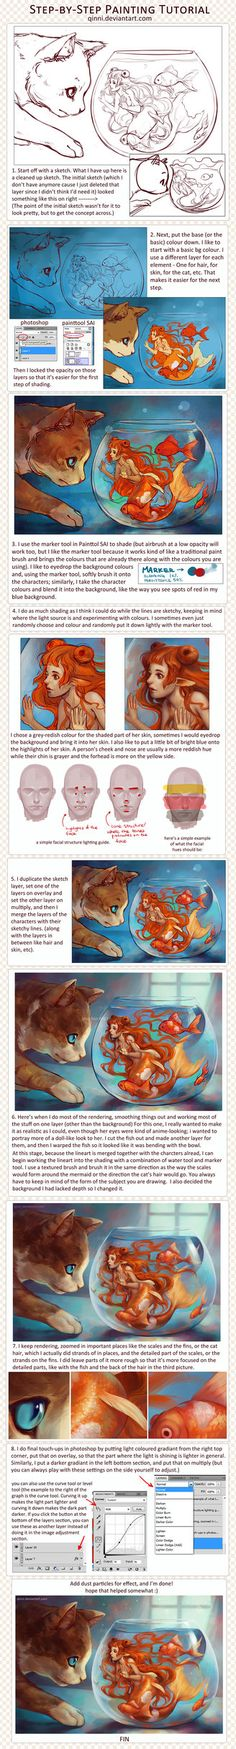 step_by_step_digital_painting_tutorial_by_qinni-d5zbk8u.jpg (328×2432)